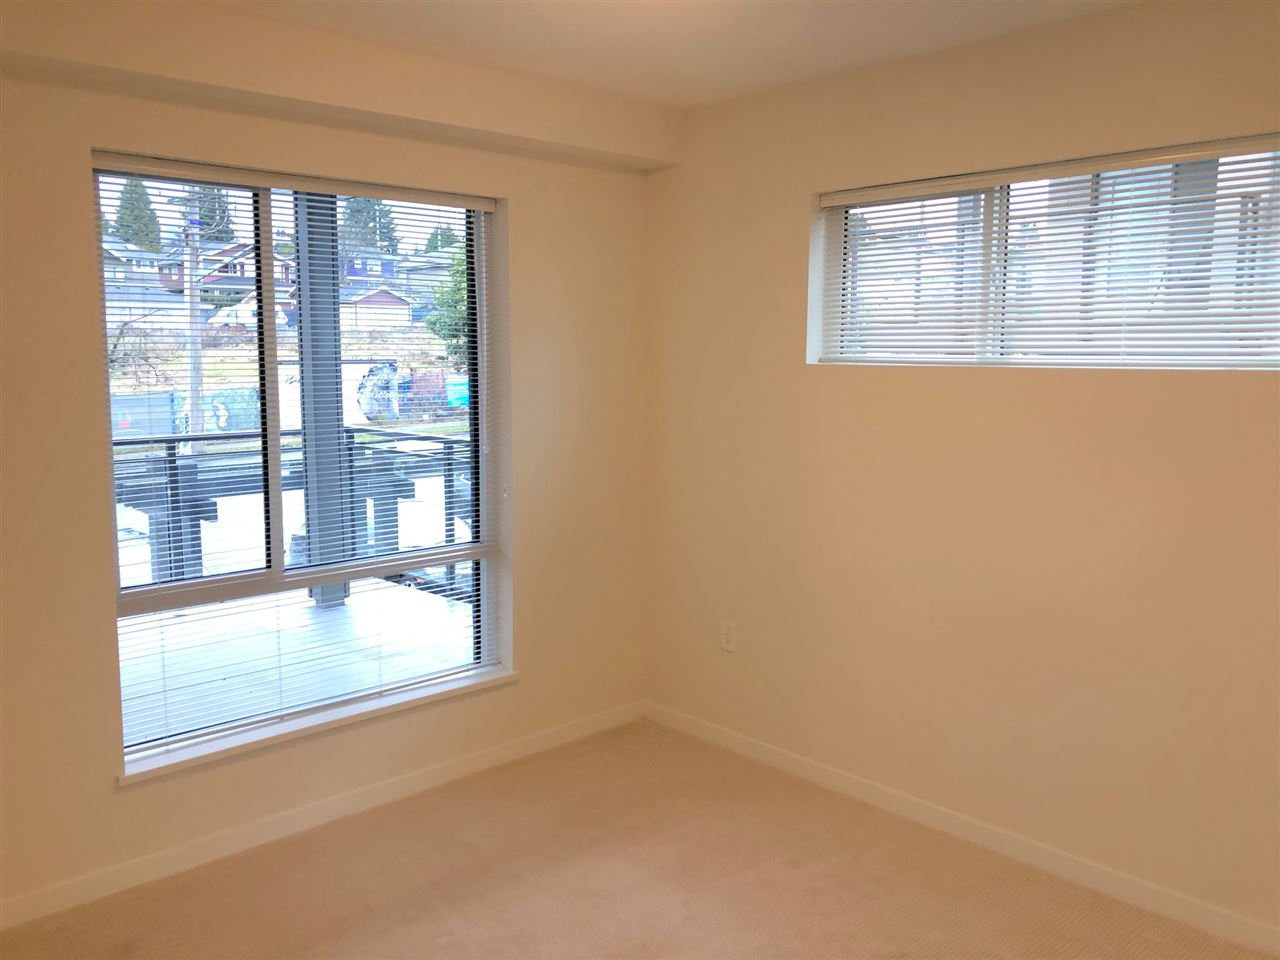 """Photo 8: Photos: 212 615 E 3RD Street in North Vancouver: Lower Lonsdale Condo for sale in """"KINDRED MOODYVILLE"""" : MLS®# R2421547"""